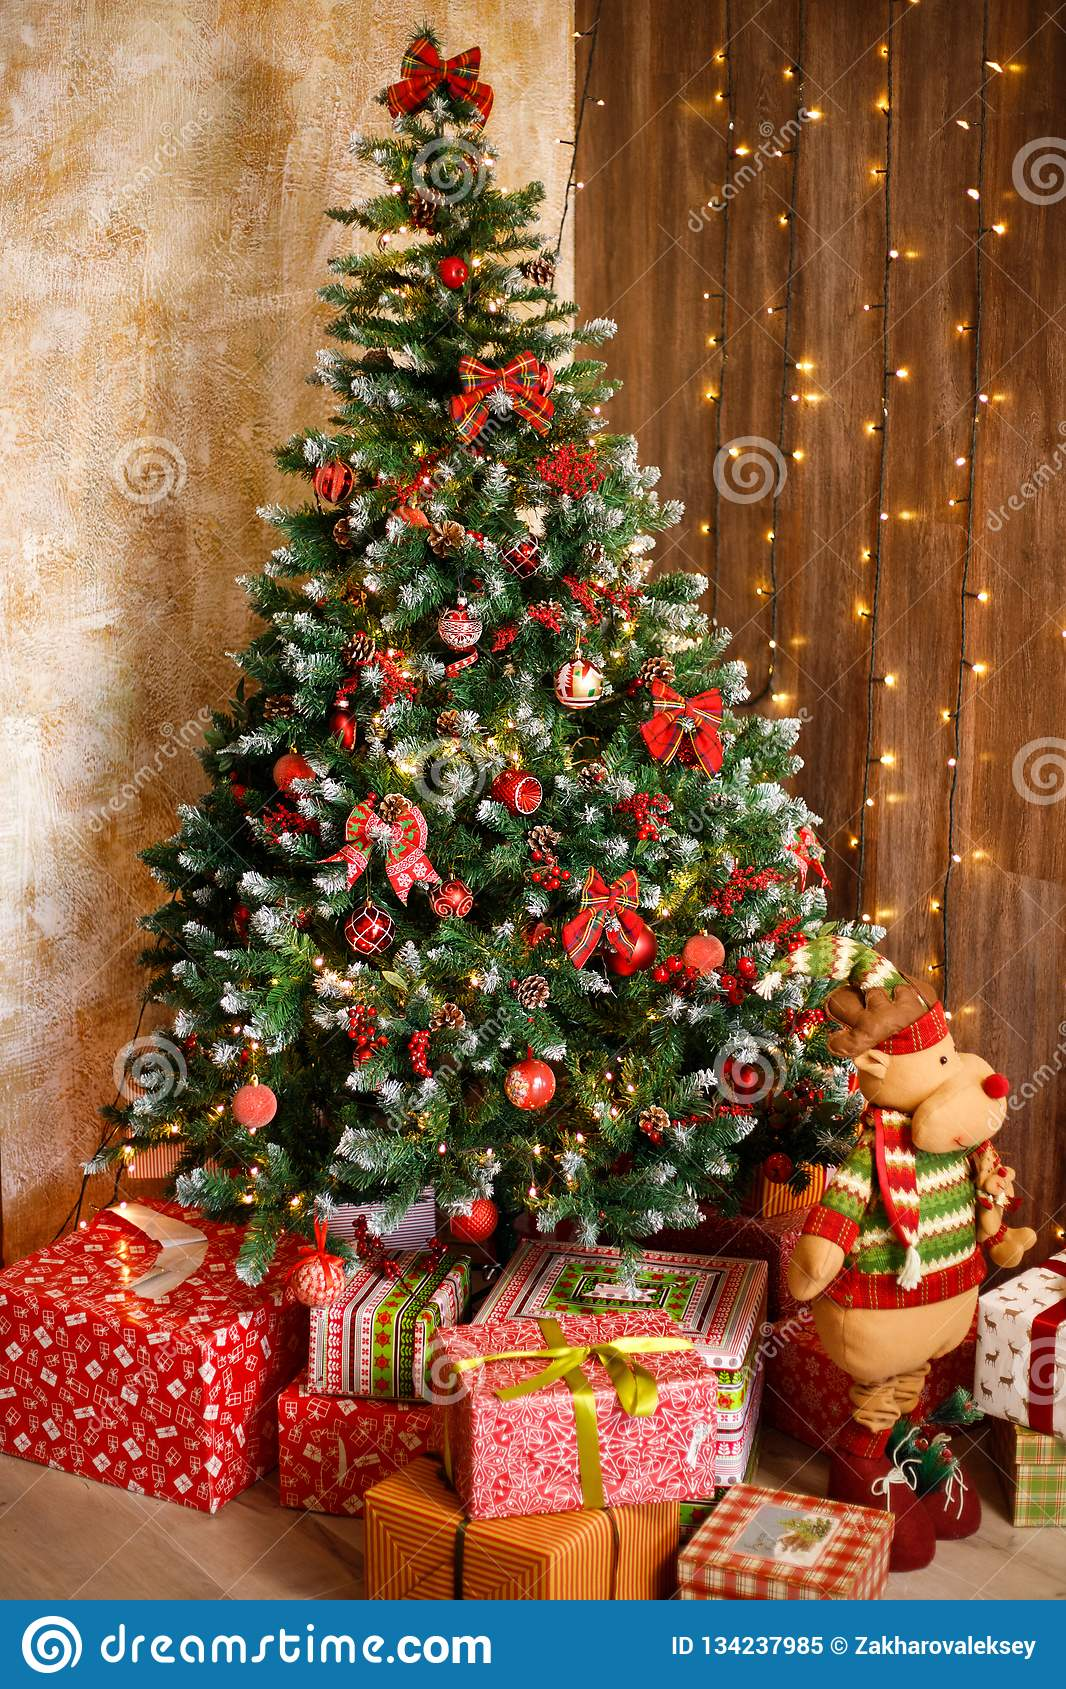 Christmas New Year Interior With Red Brick Wall Background Decorated Christmas Tree With Garlands And Balls Dark Box And Horse Stock Image Image Of Gold Garland 134237985